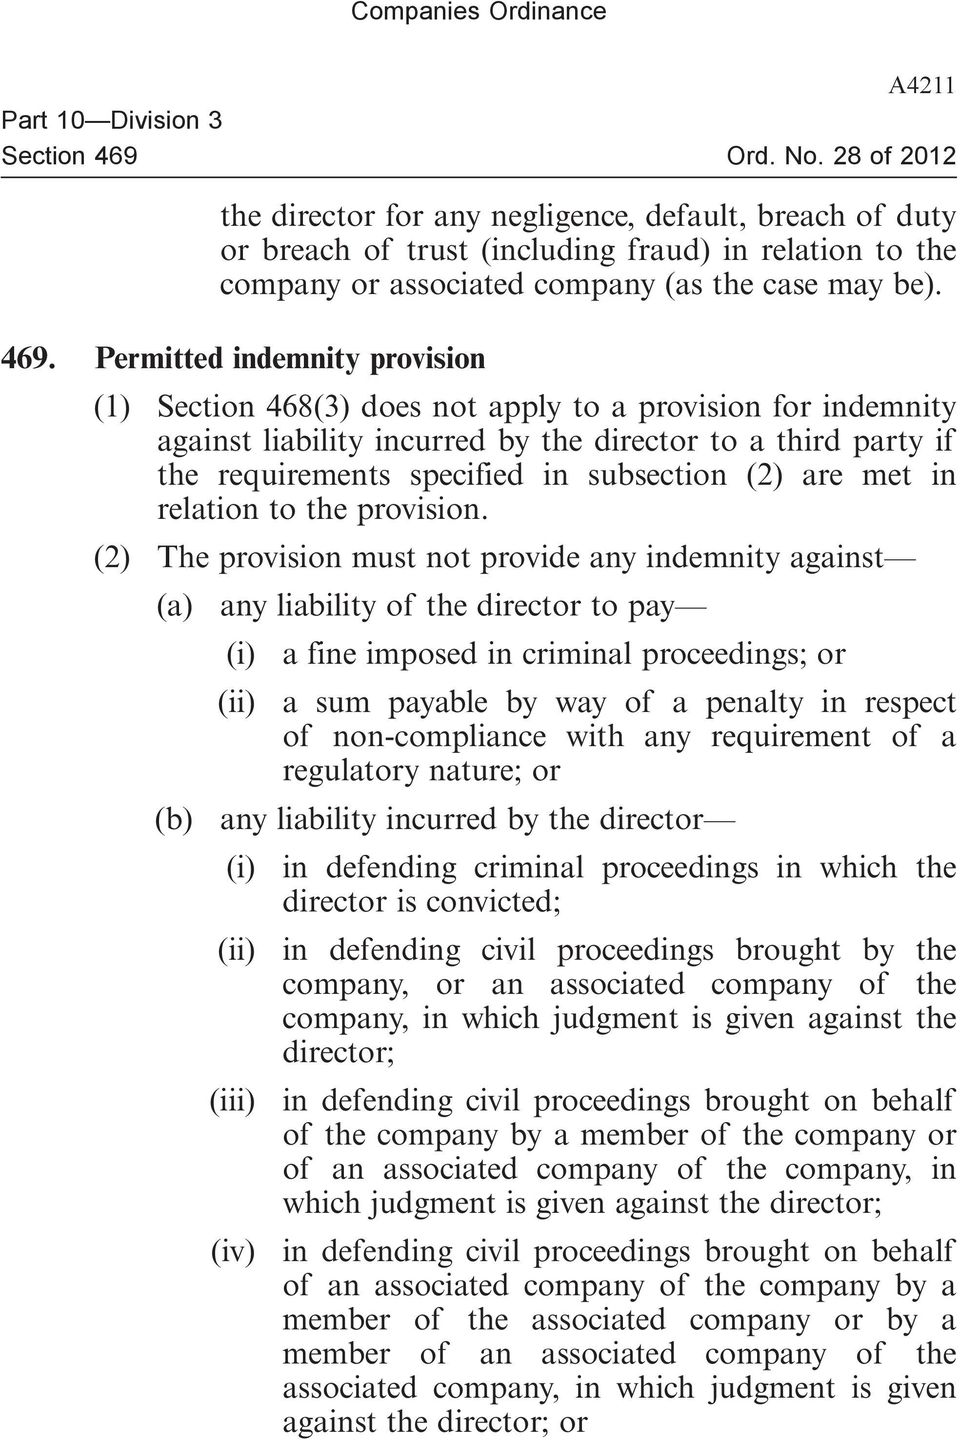 Permitted indemnity provision (1) Section 468(3) does not apply to a provision for indemnity against liability incurred by the director to a third party if the requirements specified in subsection